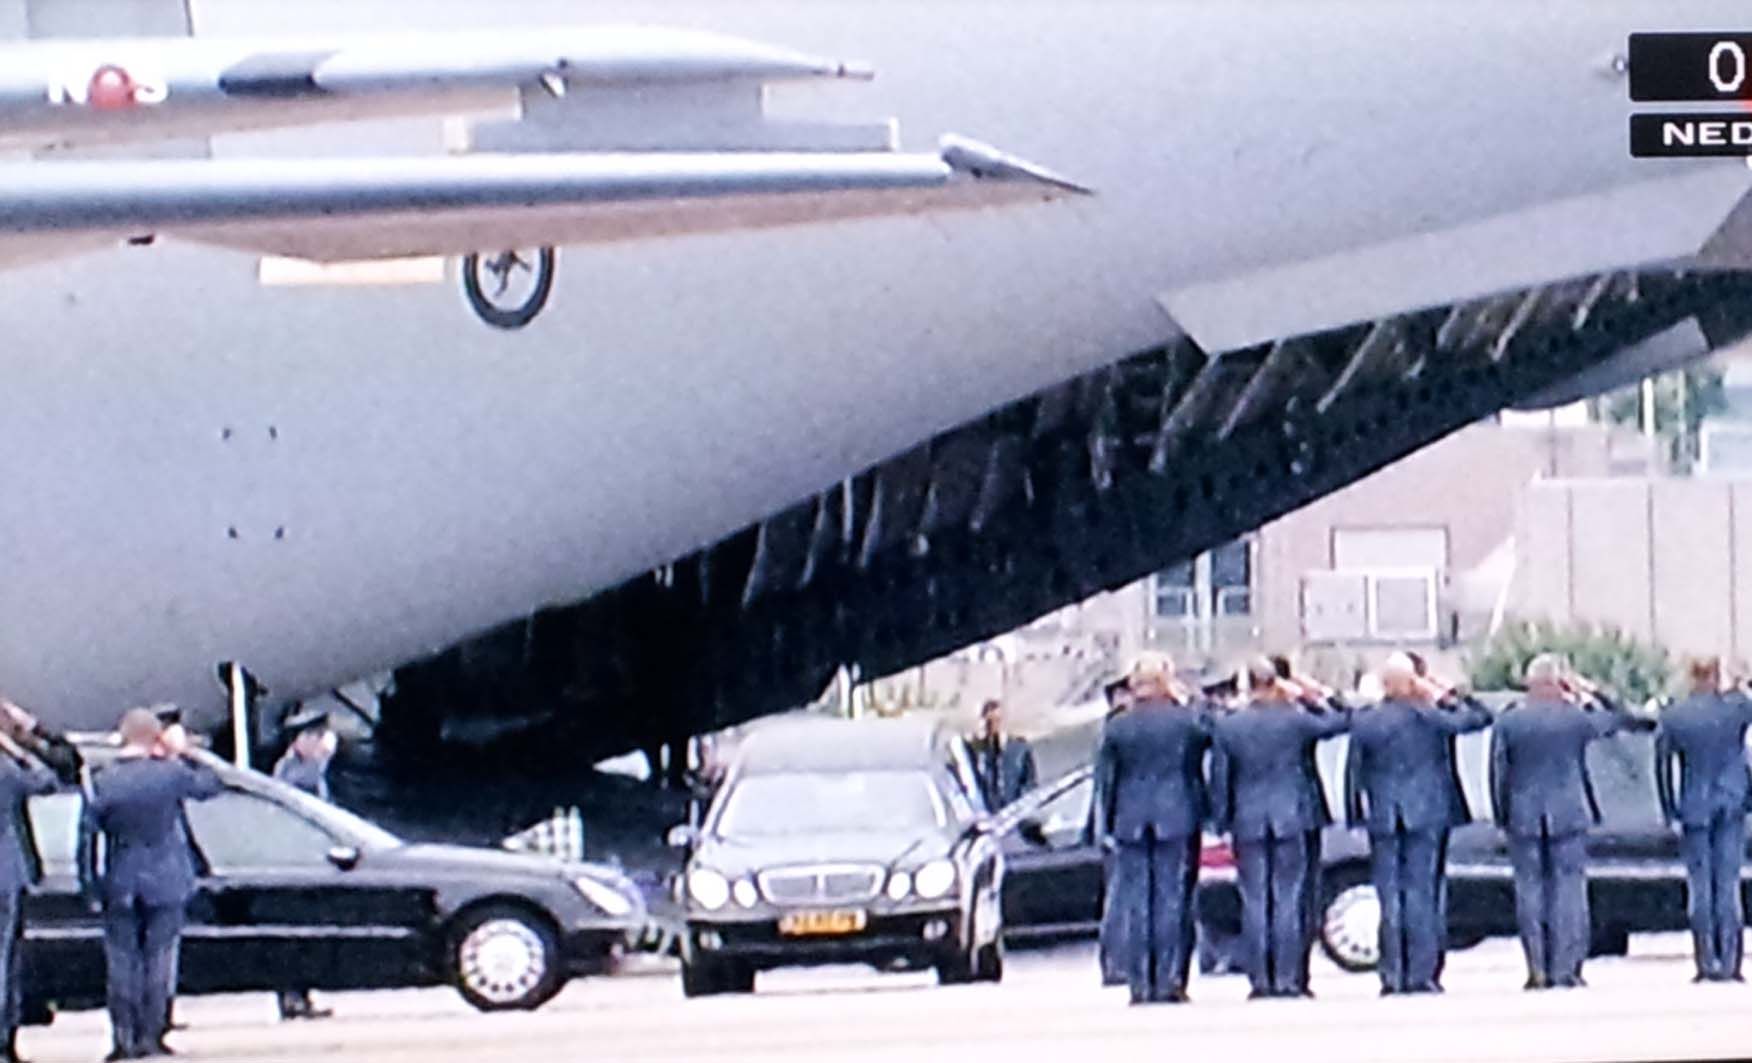 Respect-MH17_aankomst Eindhoven